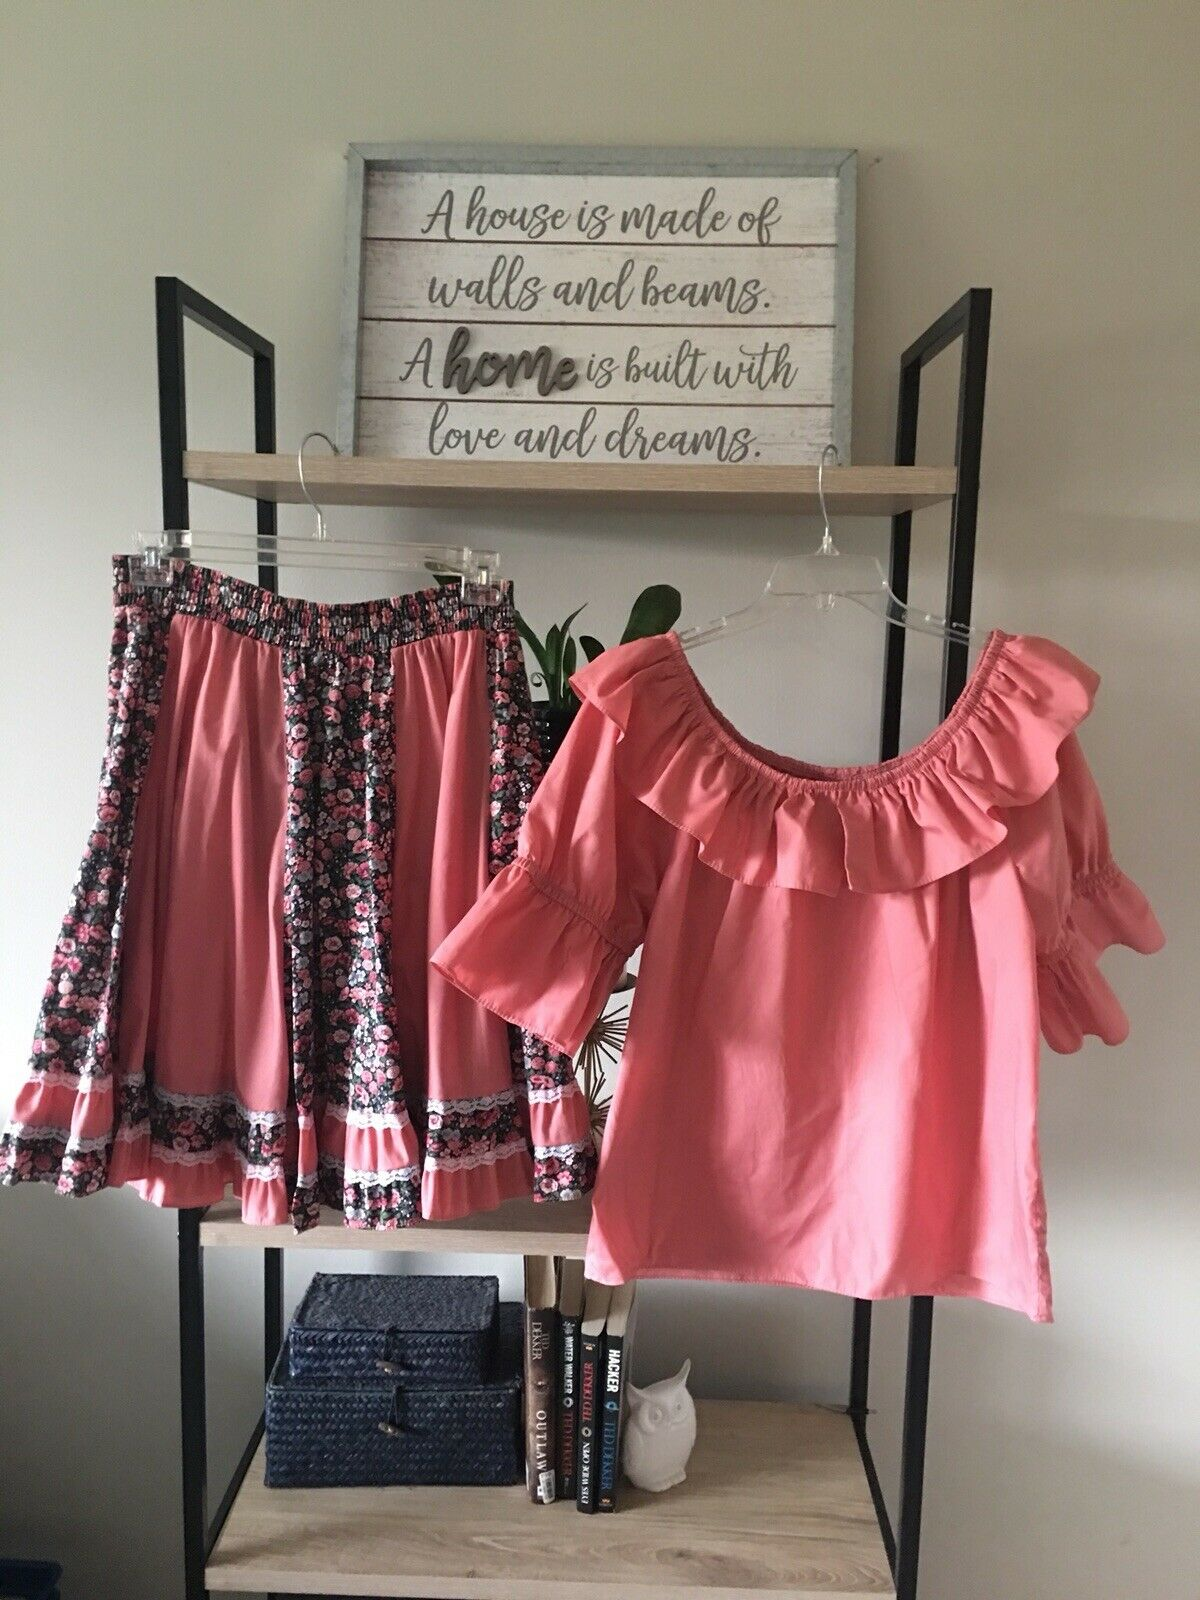 Peach Floral SQUARE DANCE OUTFIT SIZE M SQR UP FASHIONS